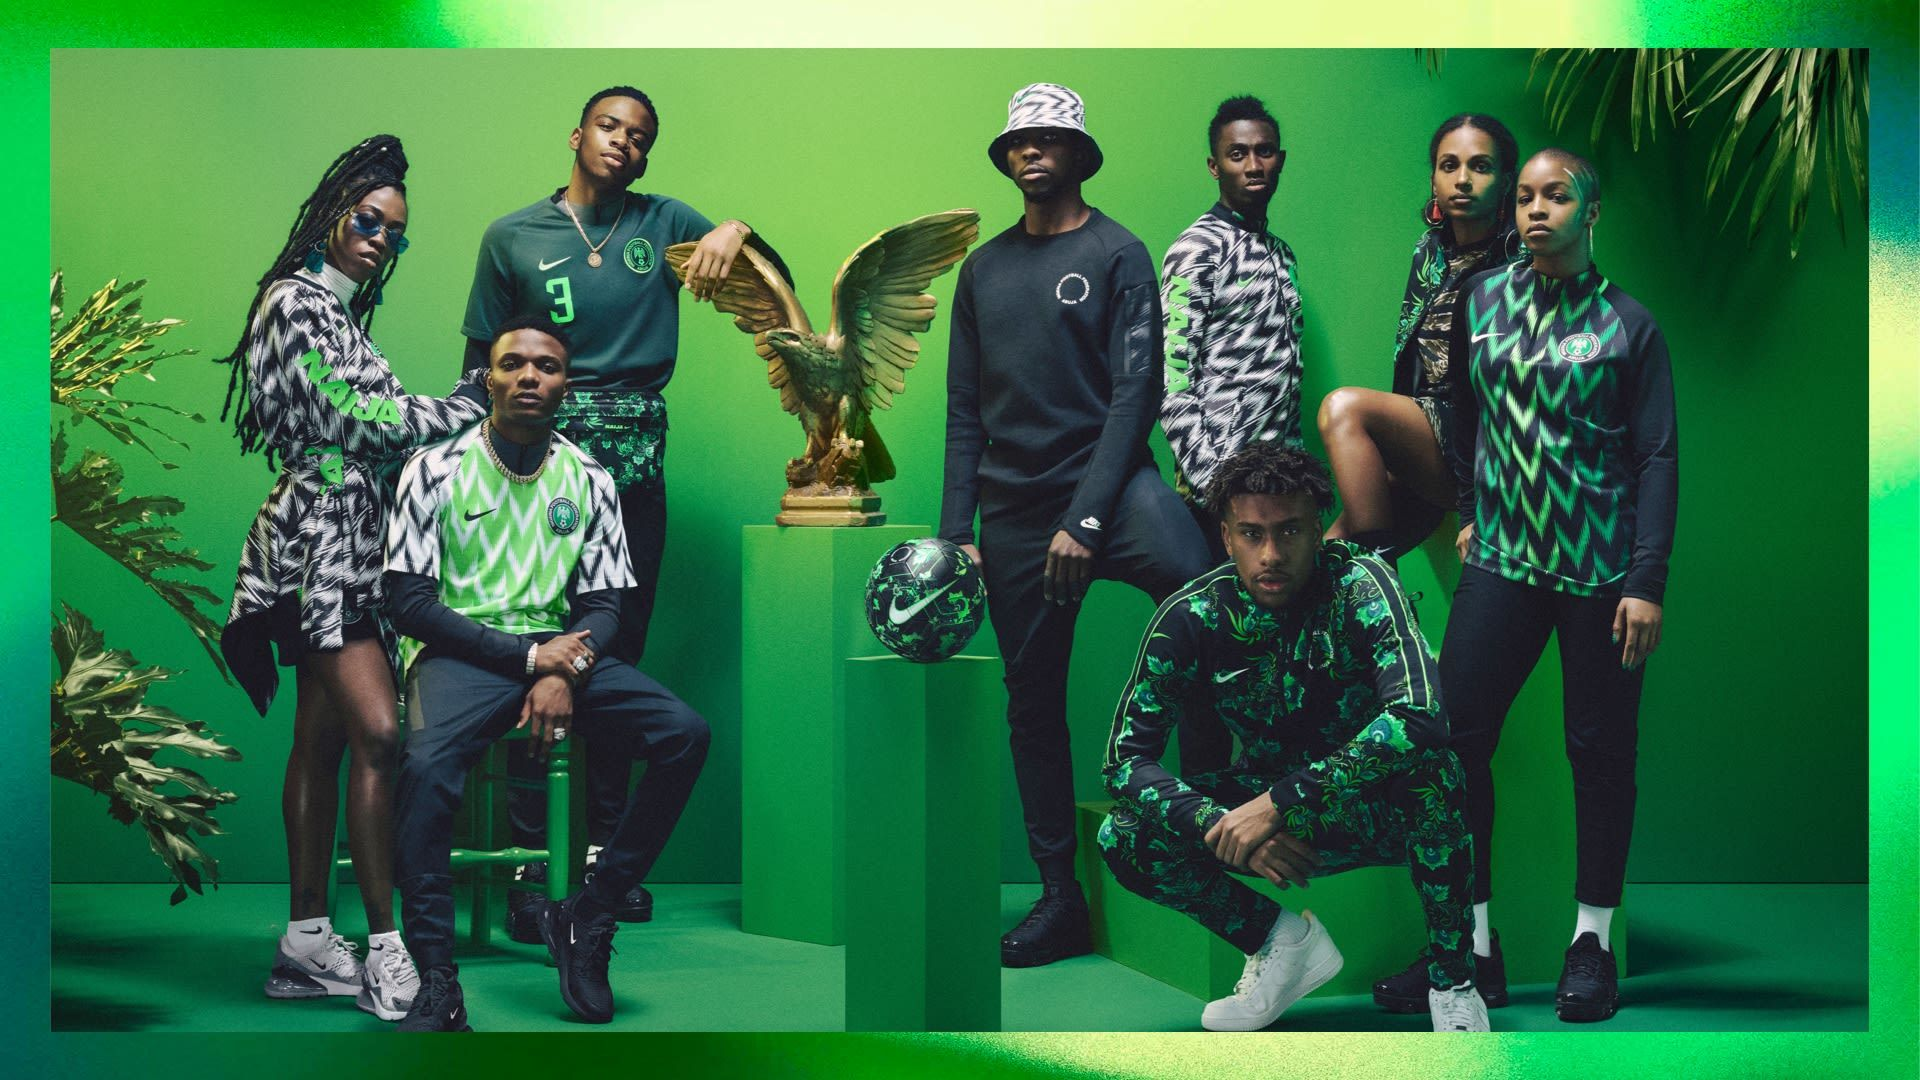 afe968872f9 NAIJA Nigeria World Cup Nike Kits Jerseys Collection Matthew Wolff Design  2018 Super Eagles